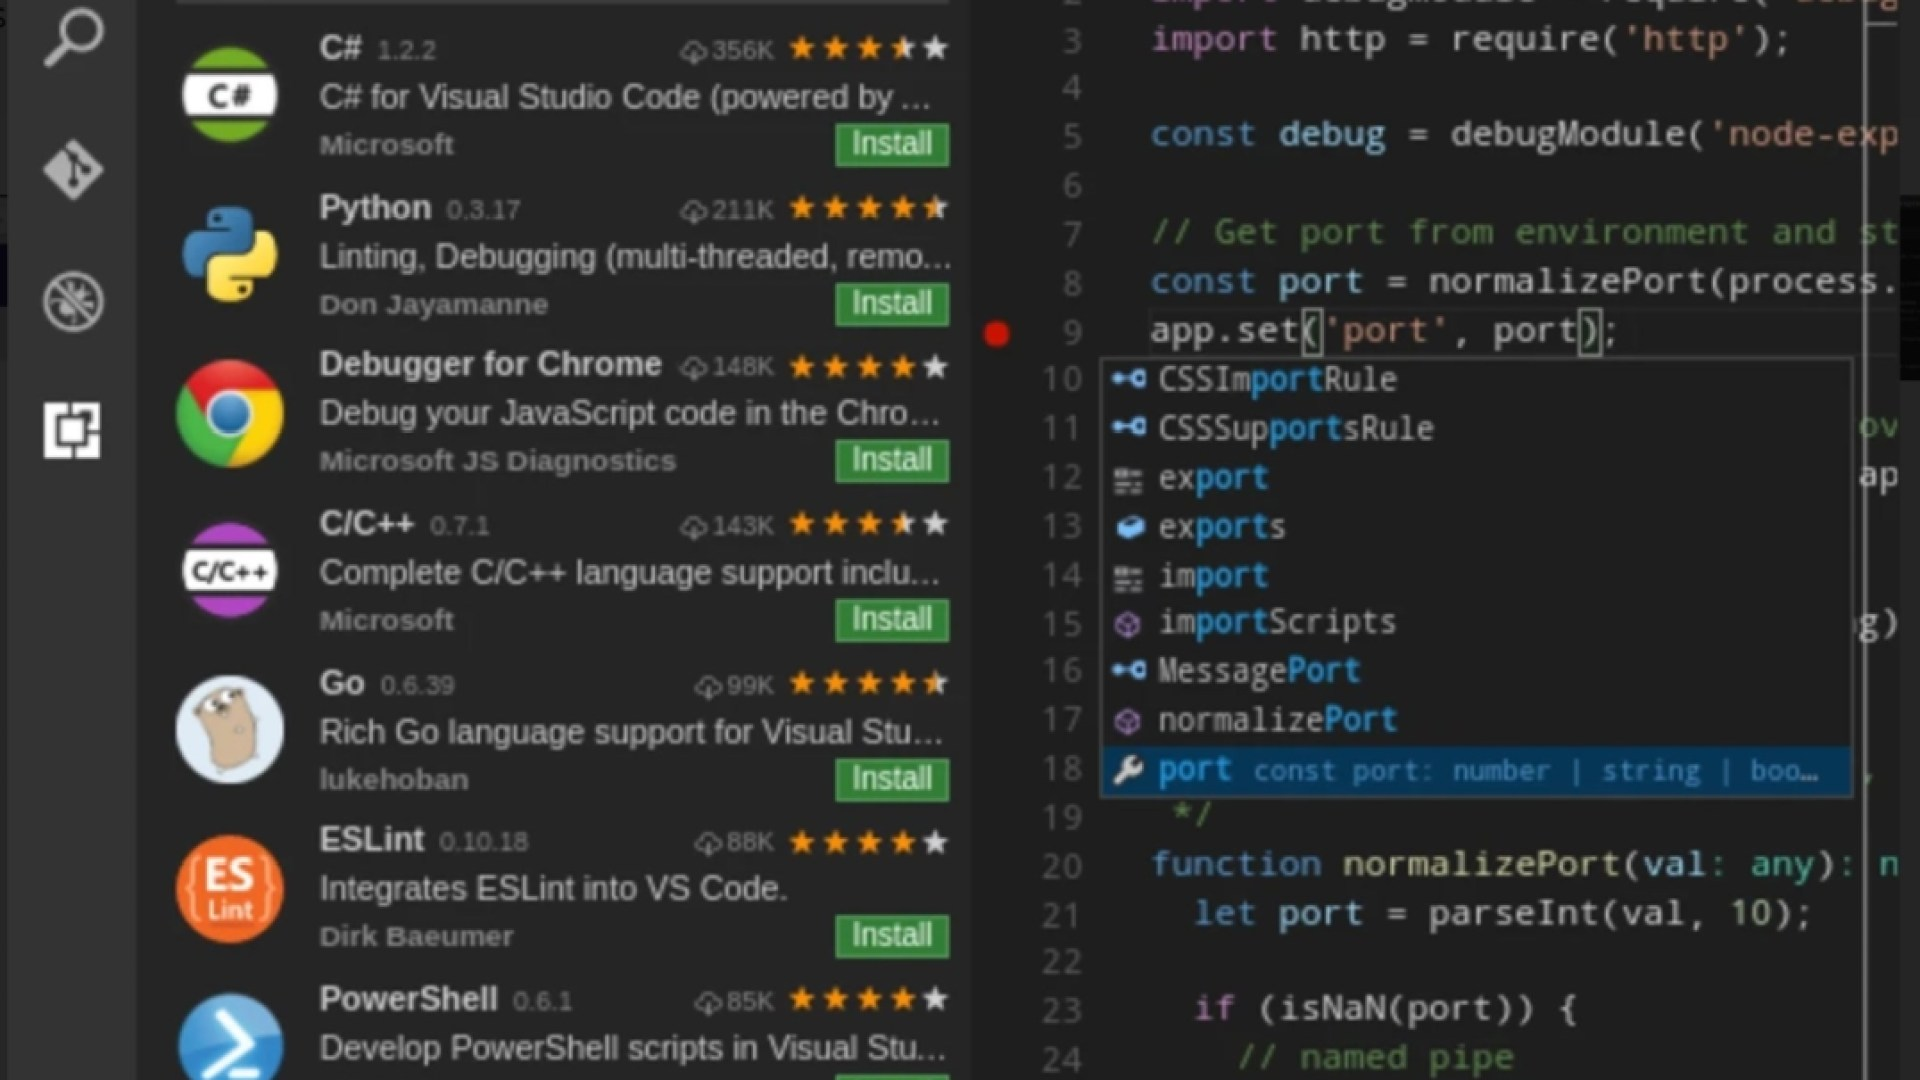 Microsoft Visual Studio Code is now available for Linux as a snap